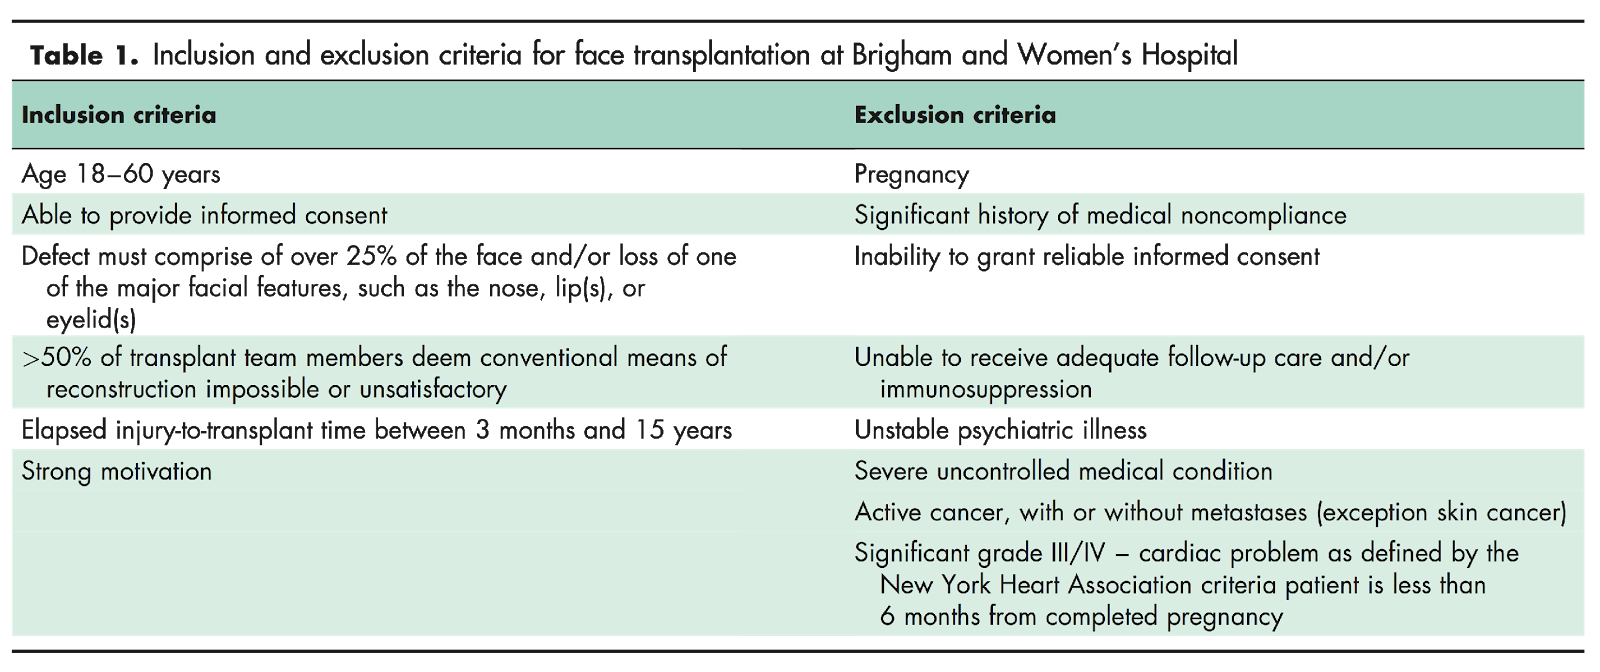 Table 1. Inclusion and exclusion criteria for face transplantation at Brigham and Women's Hospital